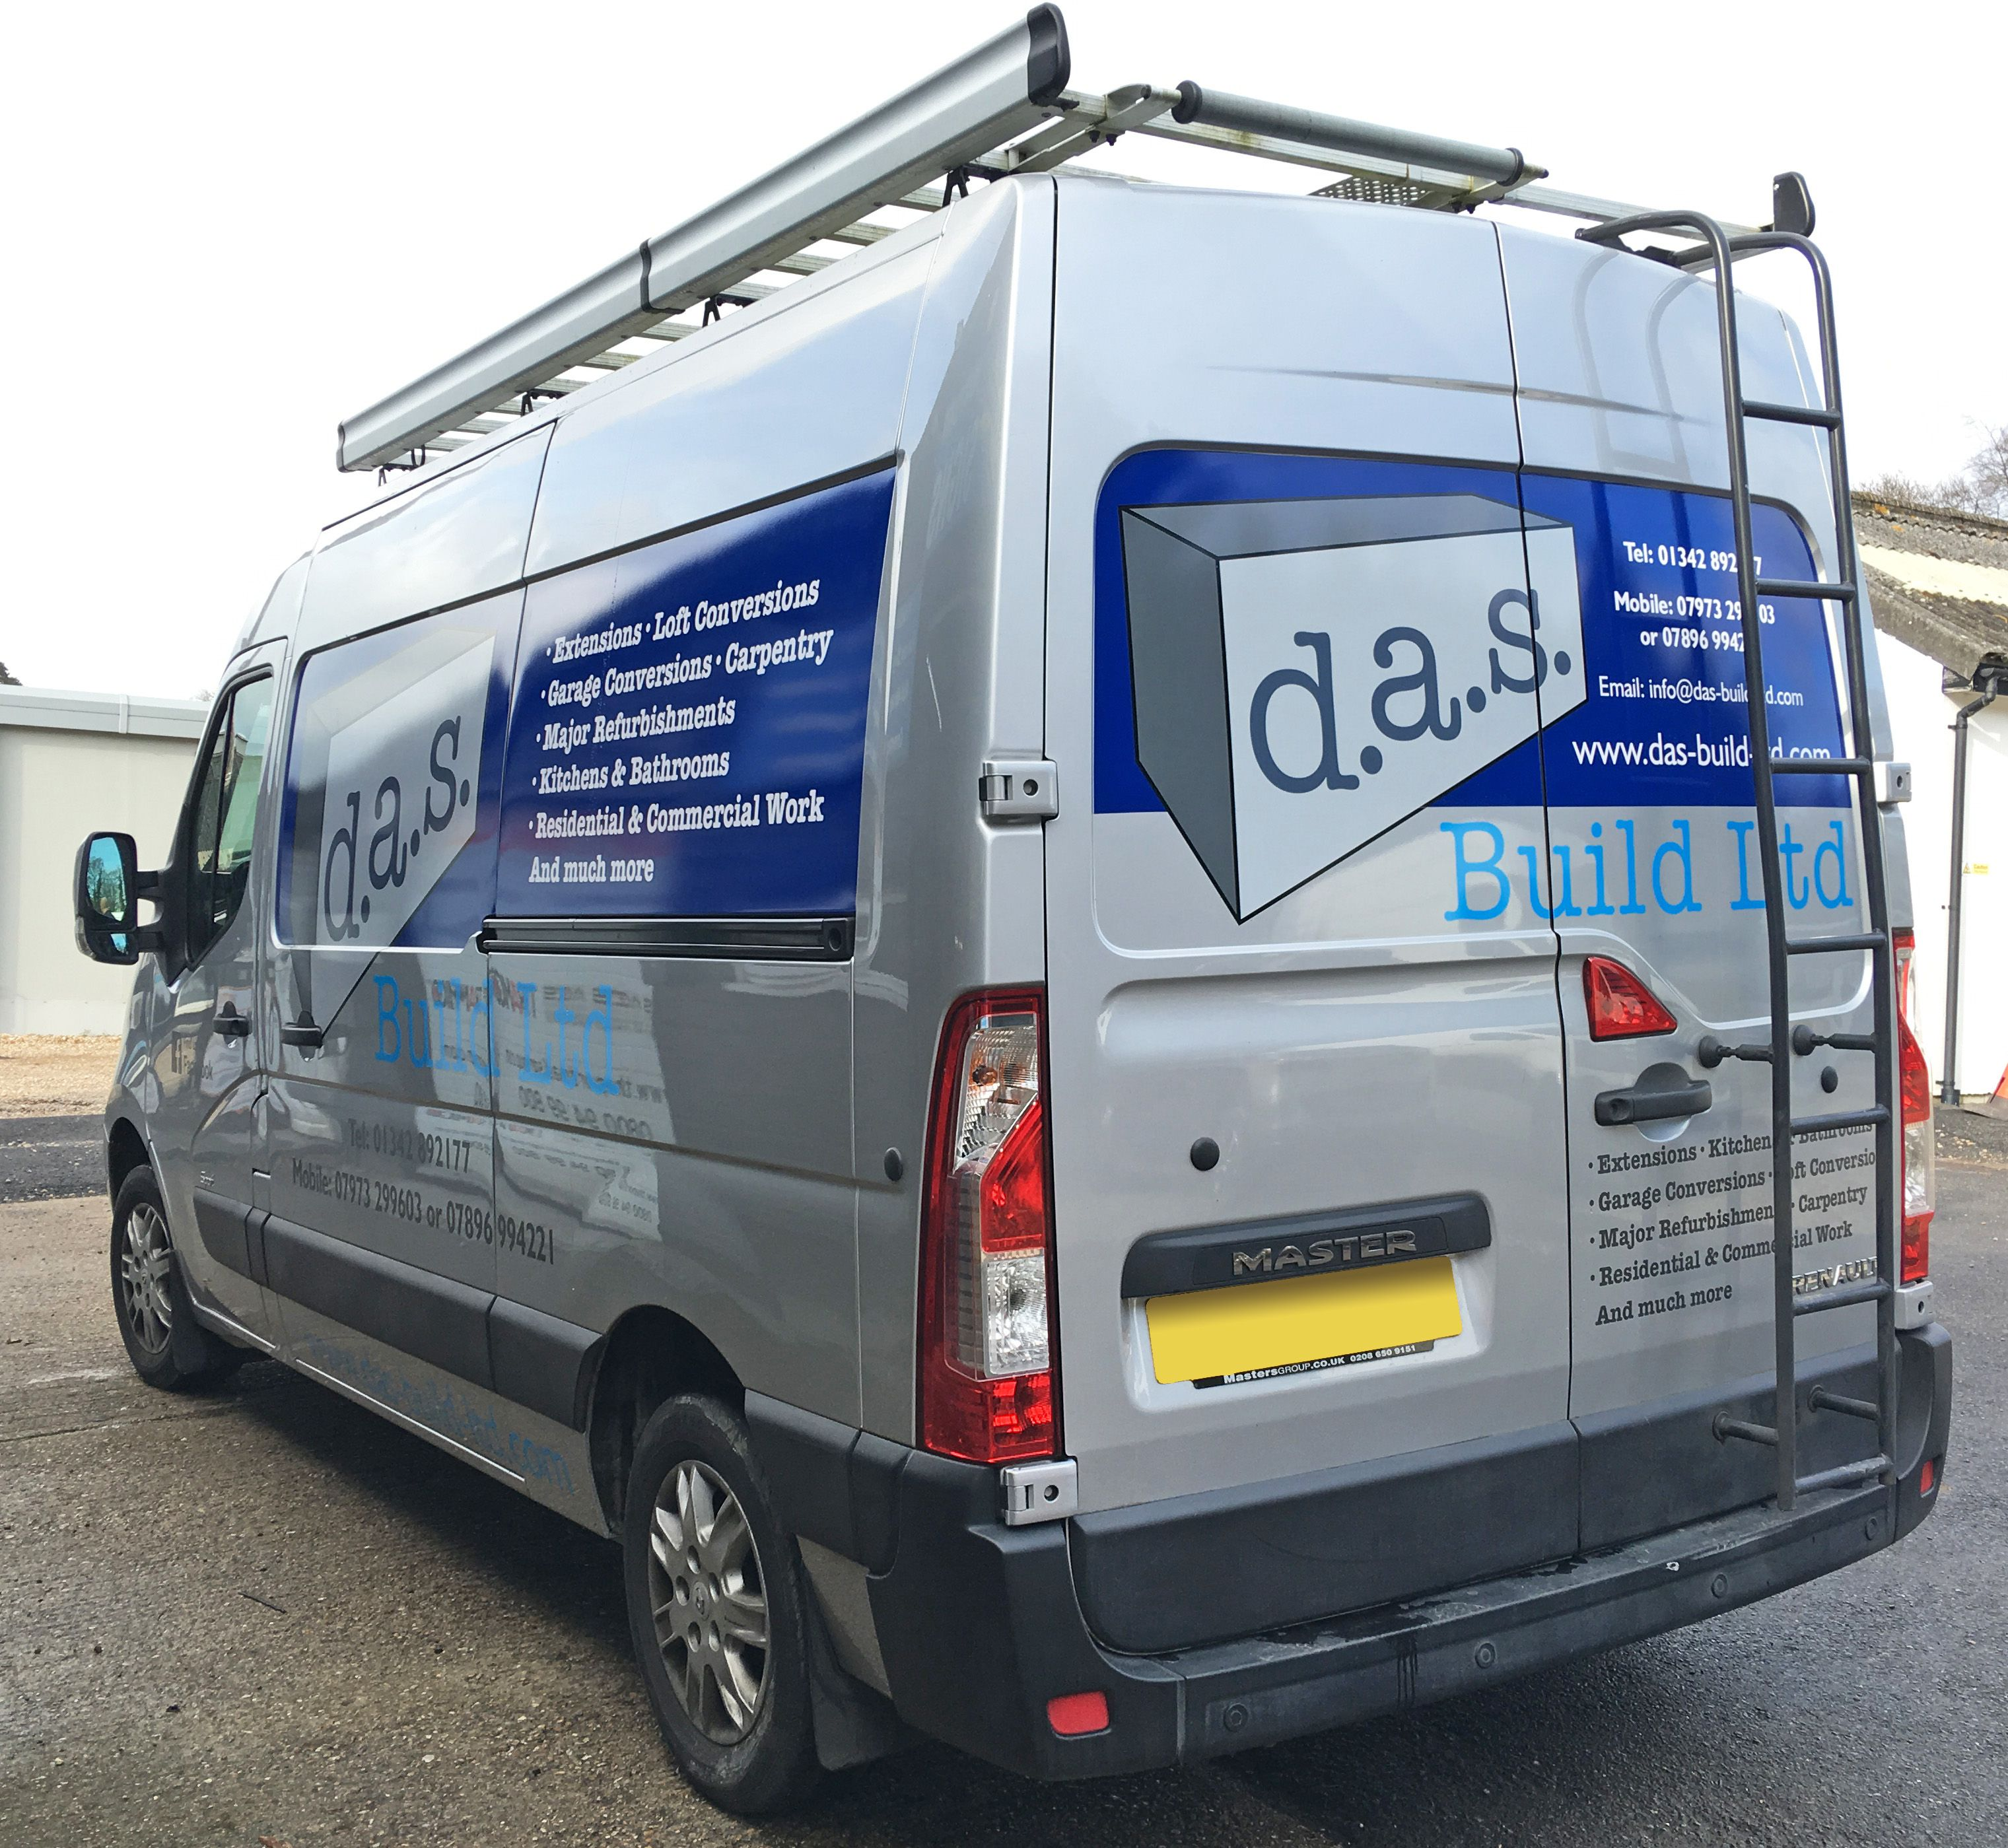 a21b1b691d D.A.S Build Ltd Renault Master van signwriting with wrapped panels ...